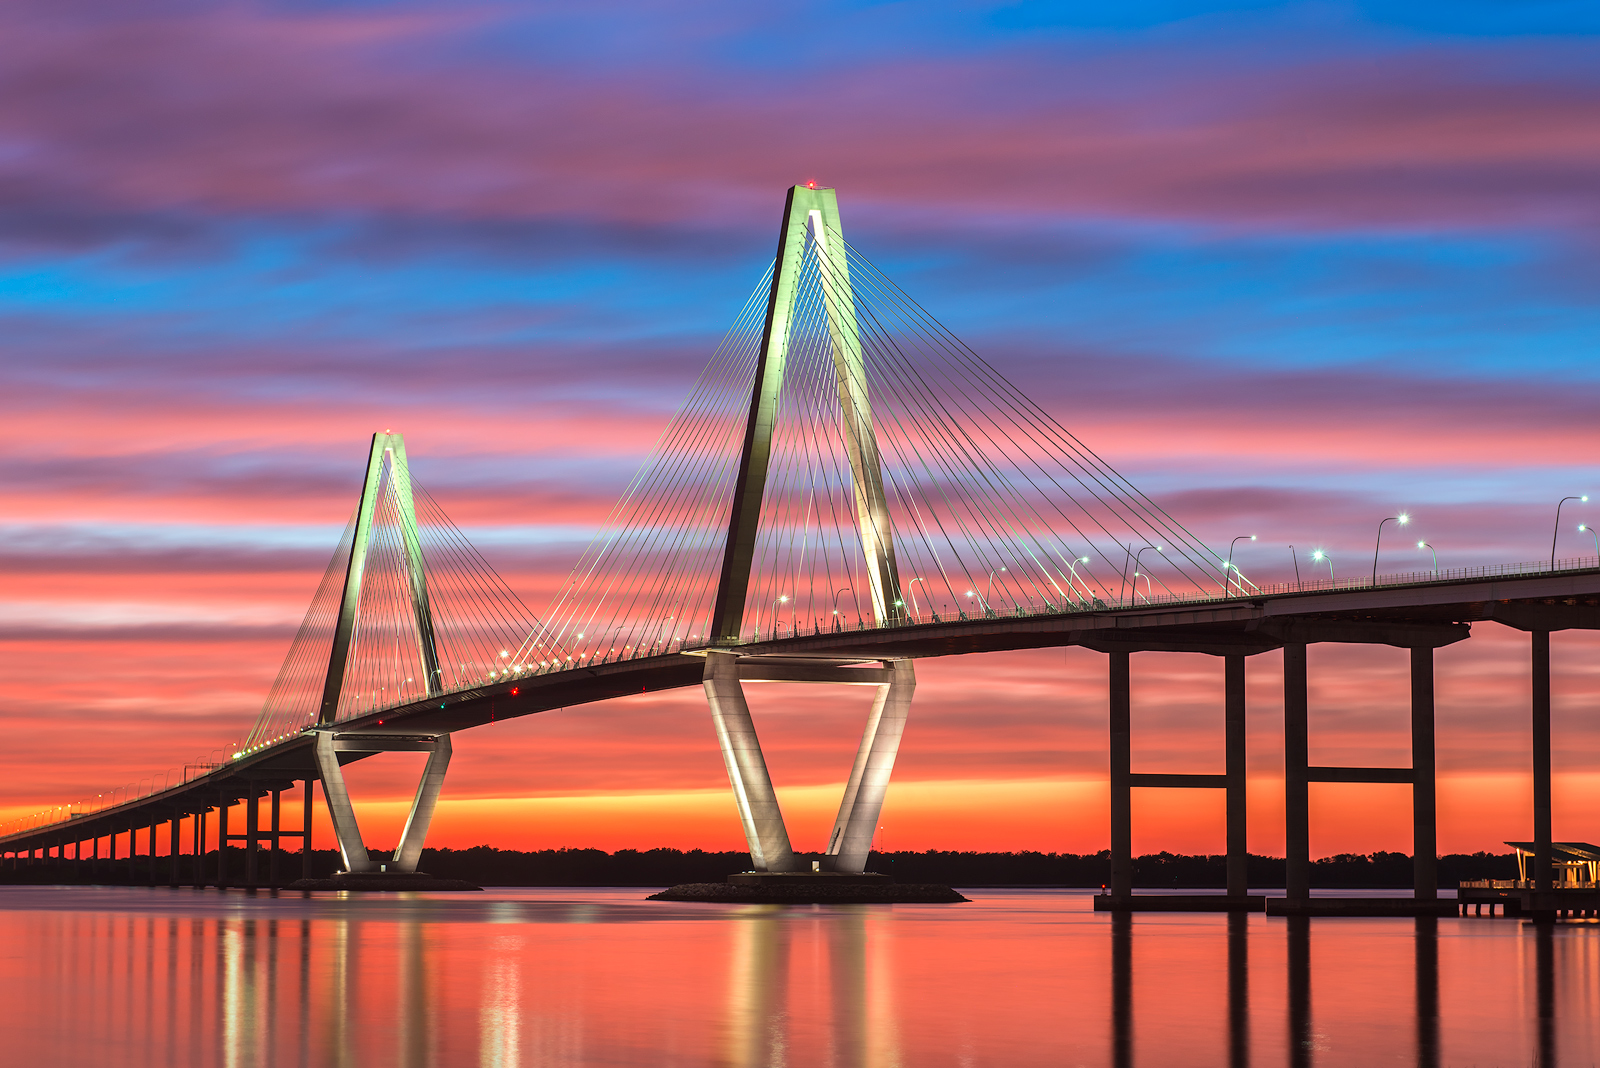 Charleston, South Carolina, Arthur Ravenel Jr. Bridge, Arthur Ravenel, Bridge, Mount Pleasant, Sunset, Dramatic Sunset, Clouds, Colorful, Low Country, Atlantic, Ocean, Marsh, Highway, photo